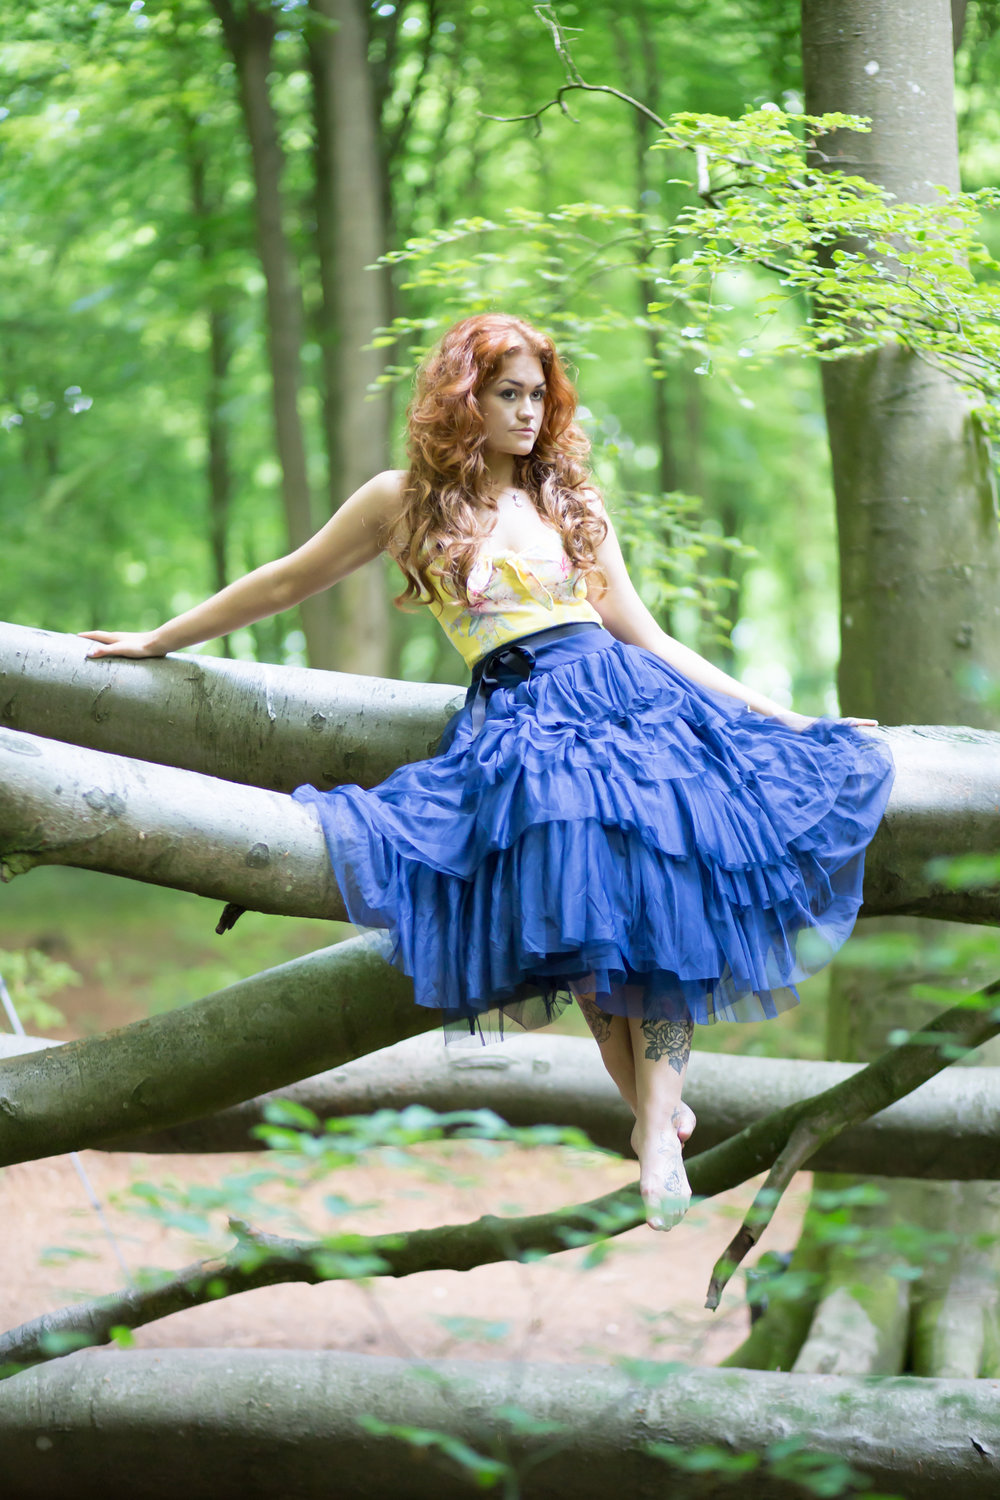 Winchester photographer, Hampshire photography company, Fashion and editorial photography by Sarah Bacchus